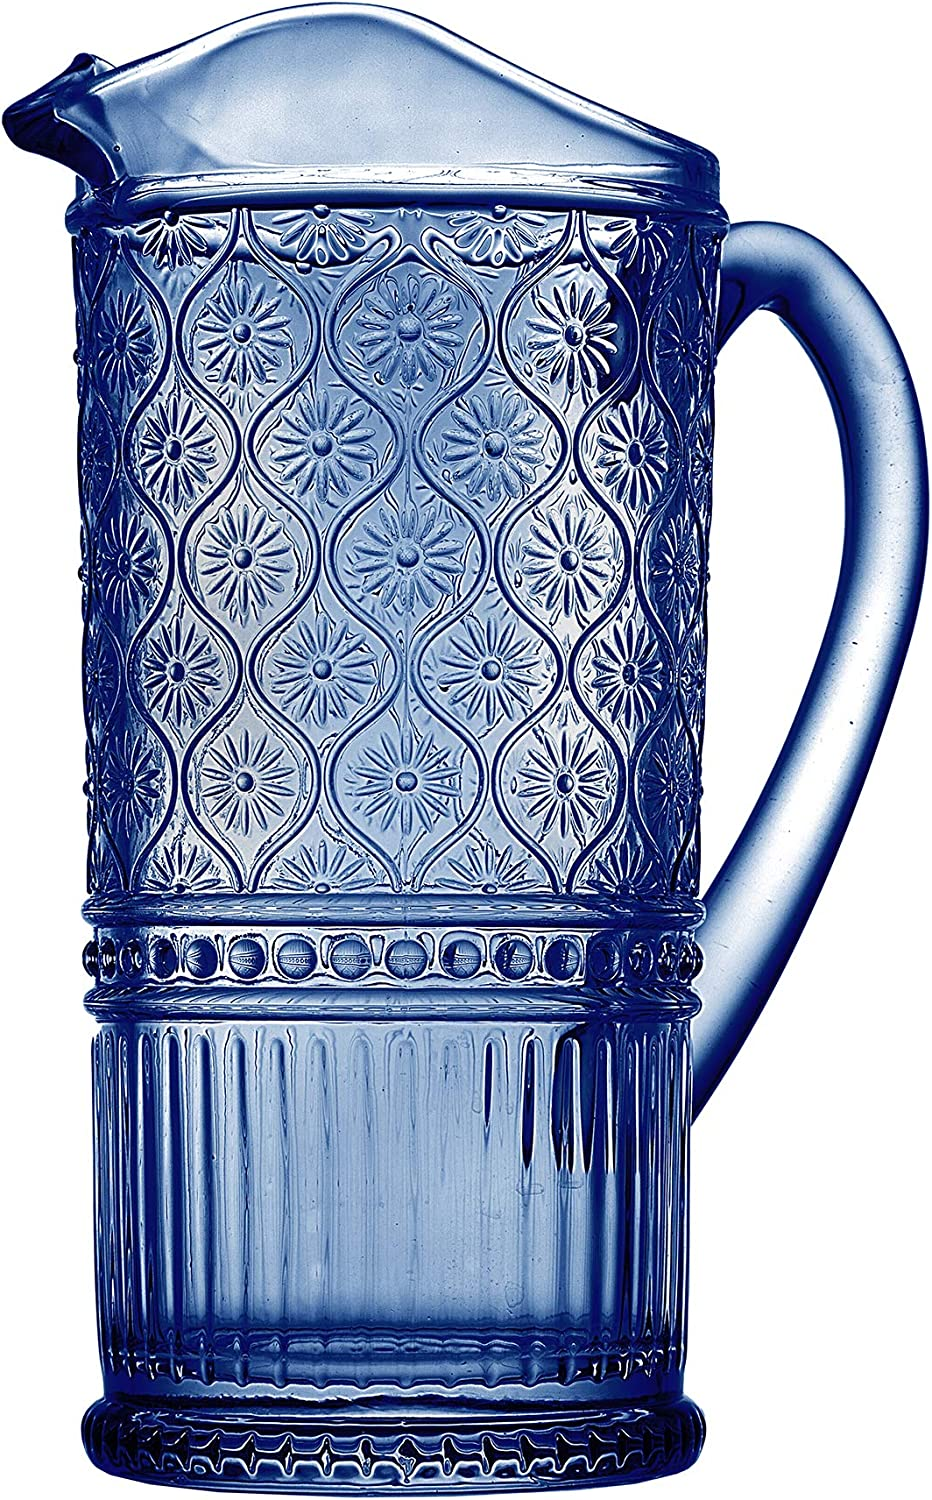 Claro by Godinger Beverage Pitcher Water Jug, Juice and Iced Tea Beverage Carafe - Blue